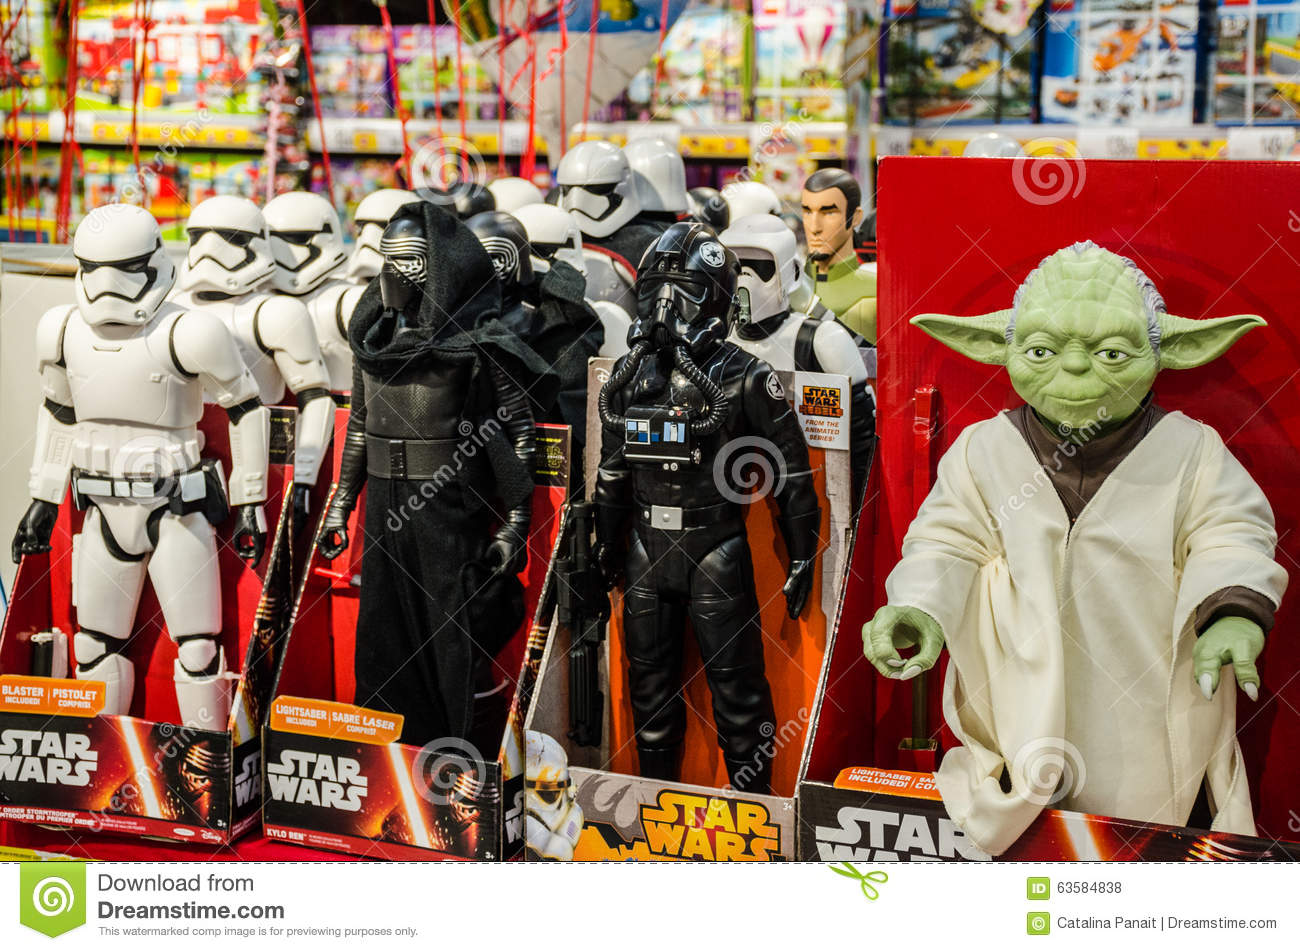 Star Wars Toys Editorial Stock Photo Image 63584838